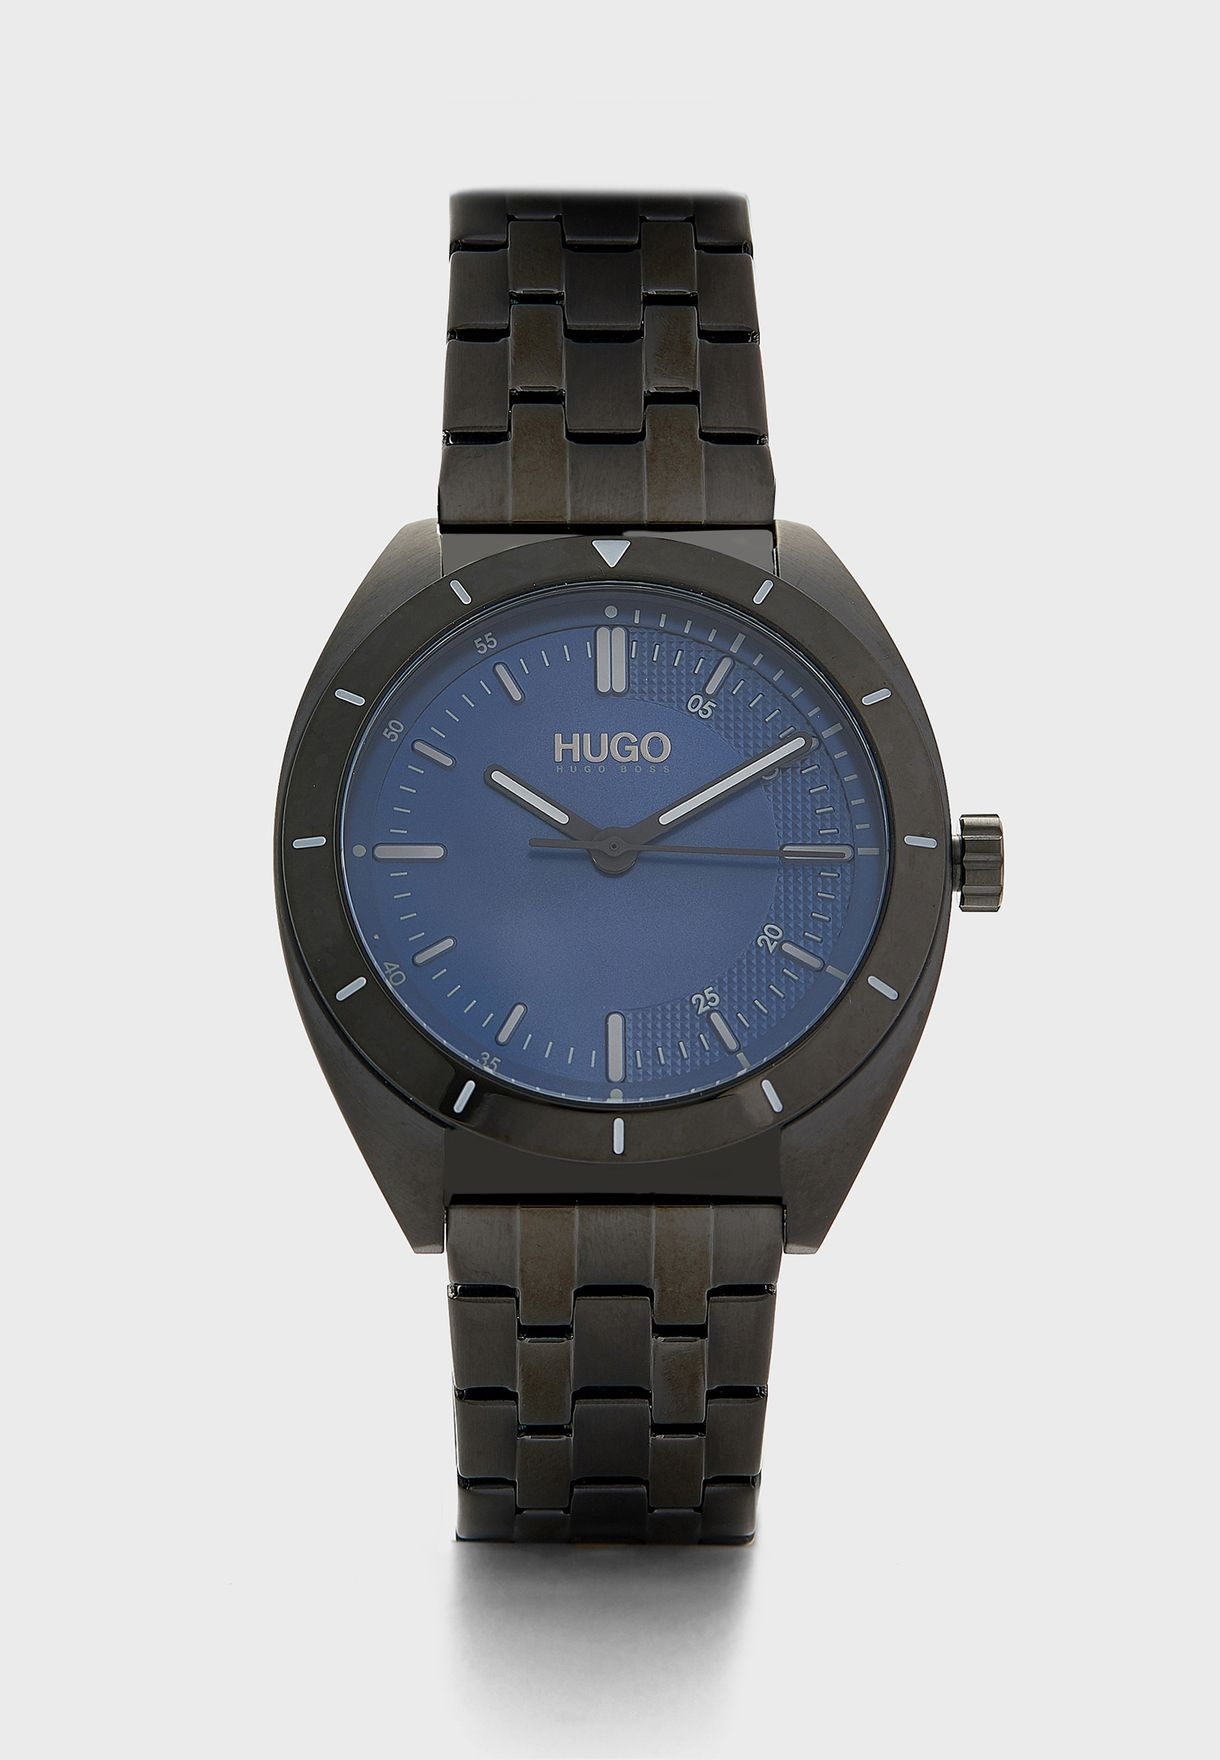 Shaped Analog Watch